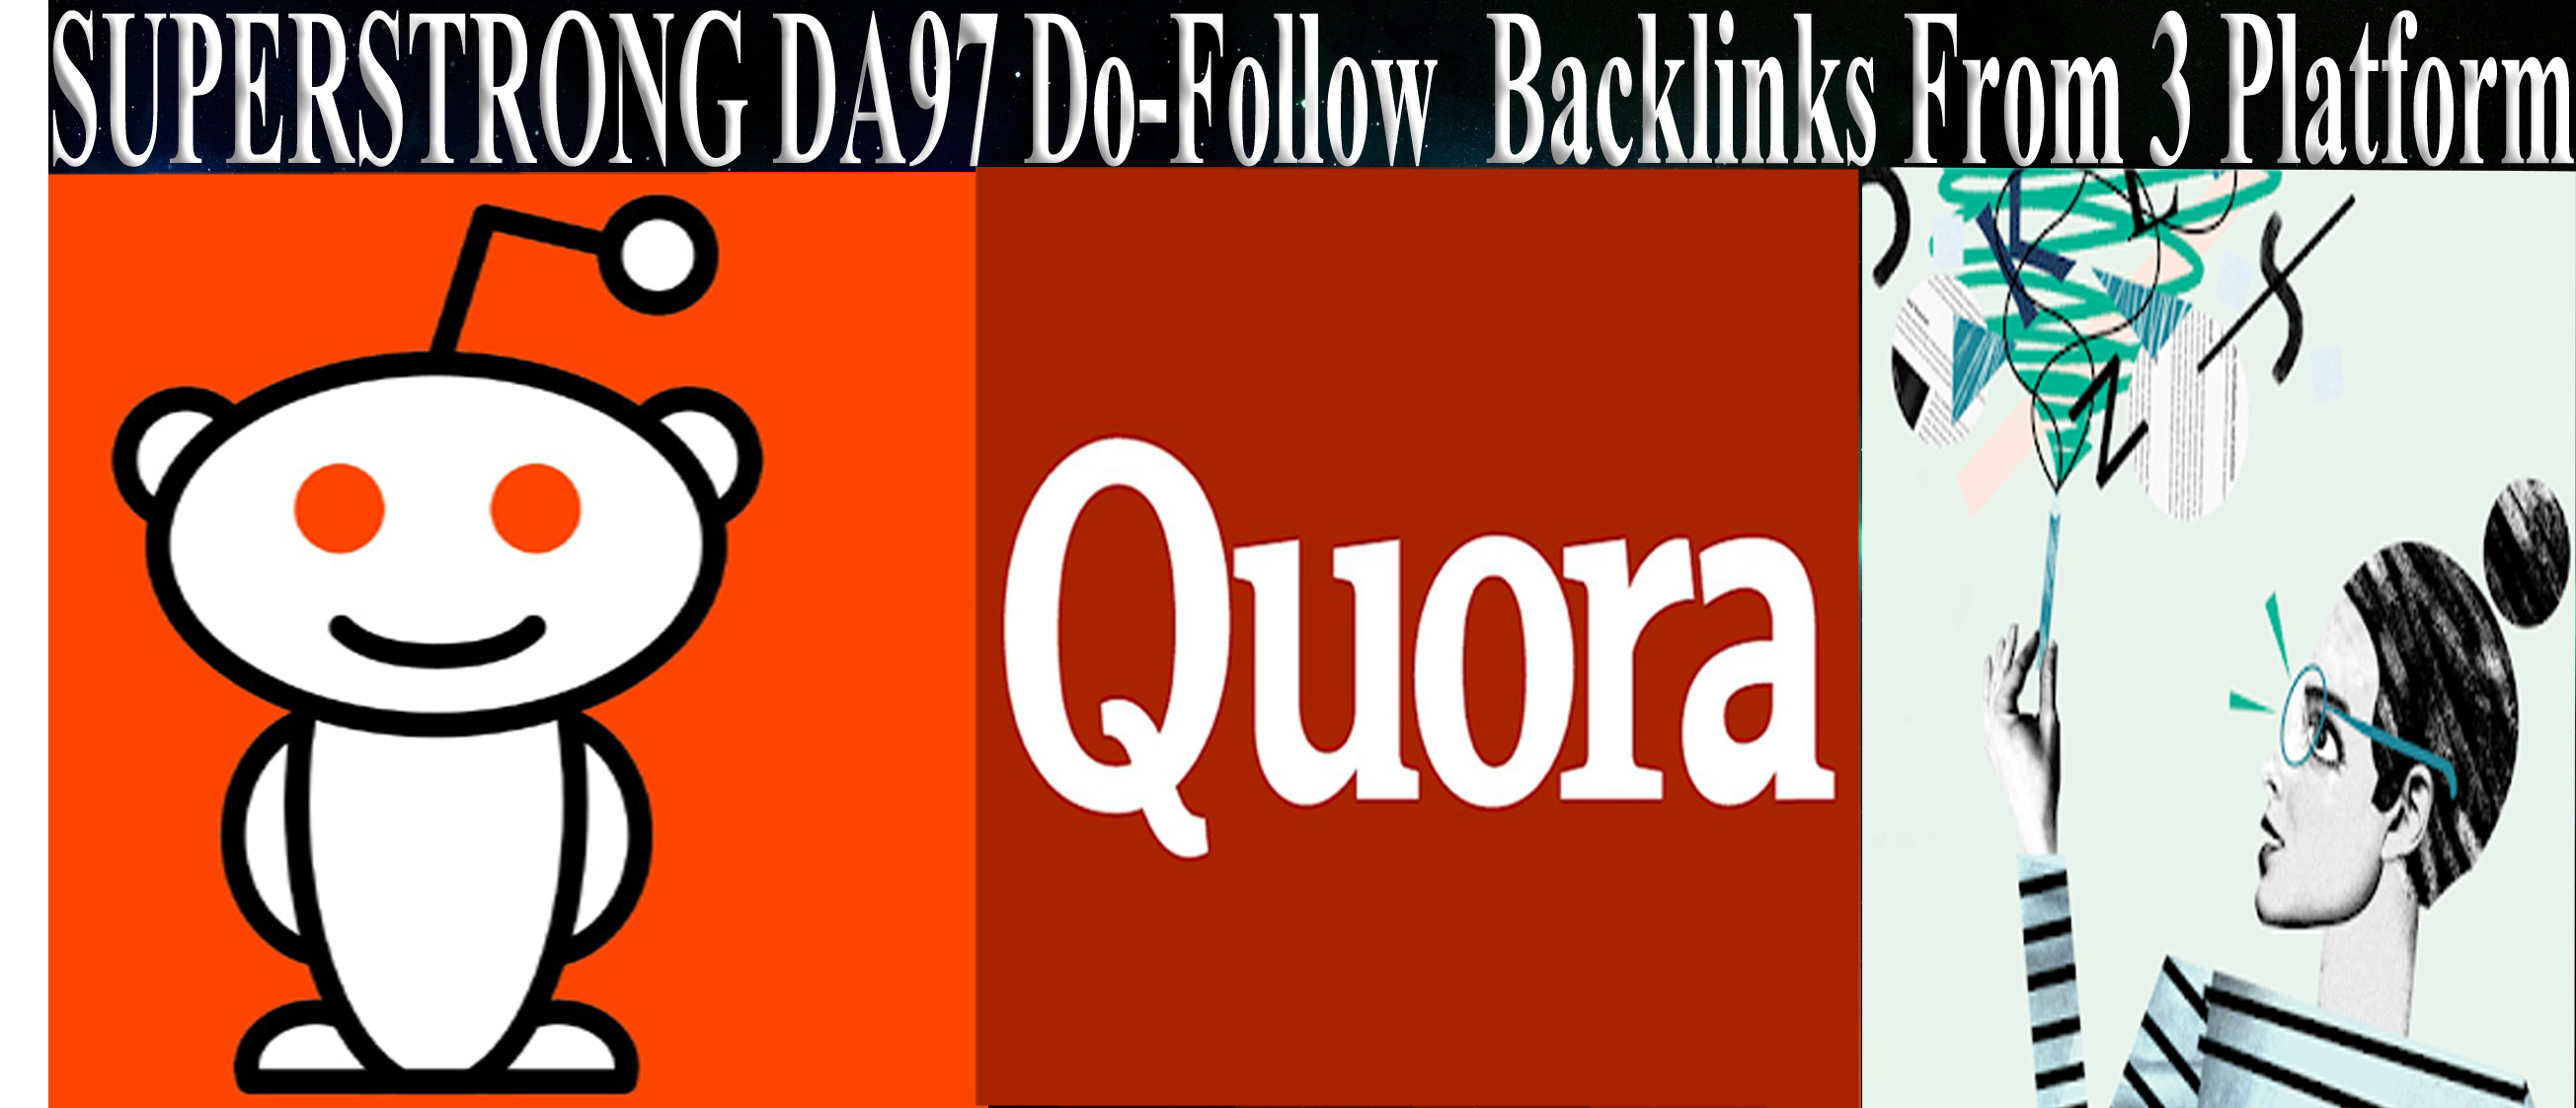 SUPERSTRONG DA97 Do-Follow Backlinks From 3 Platform